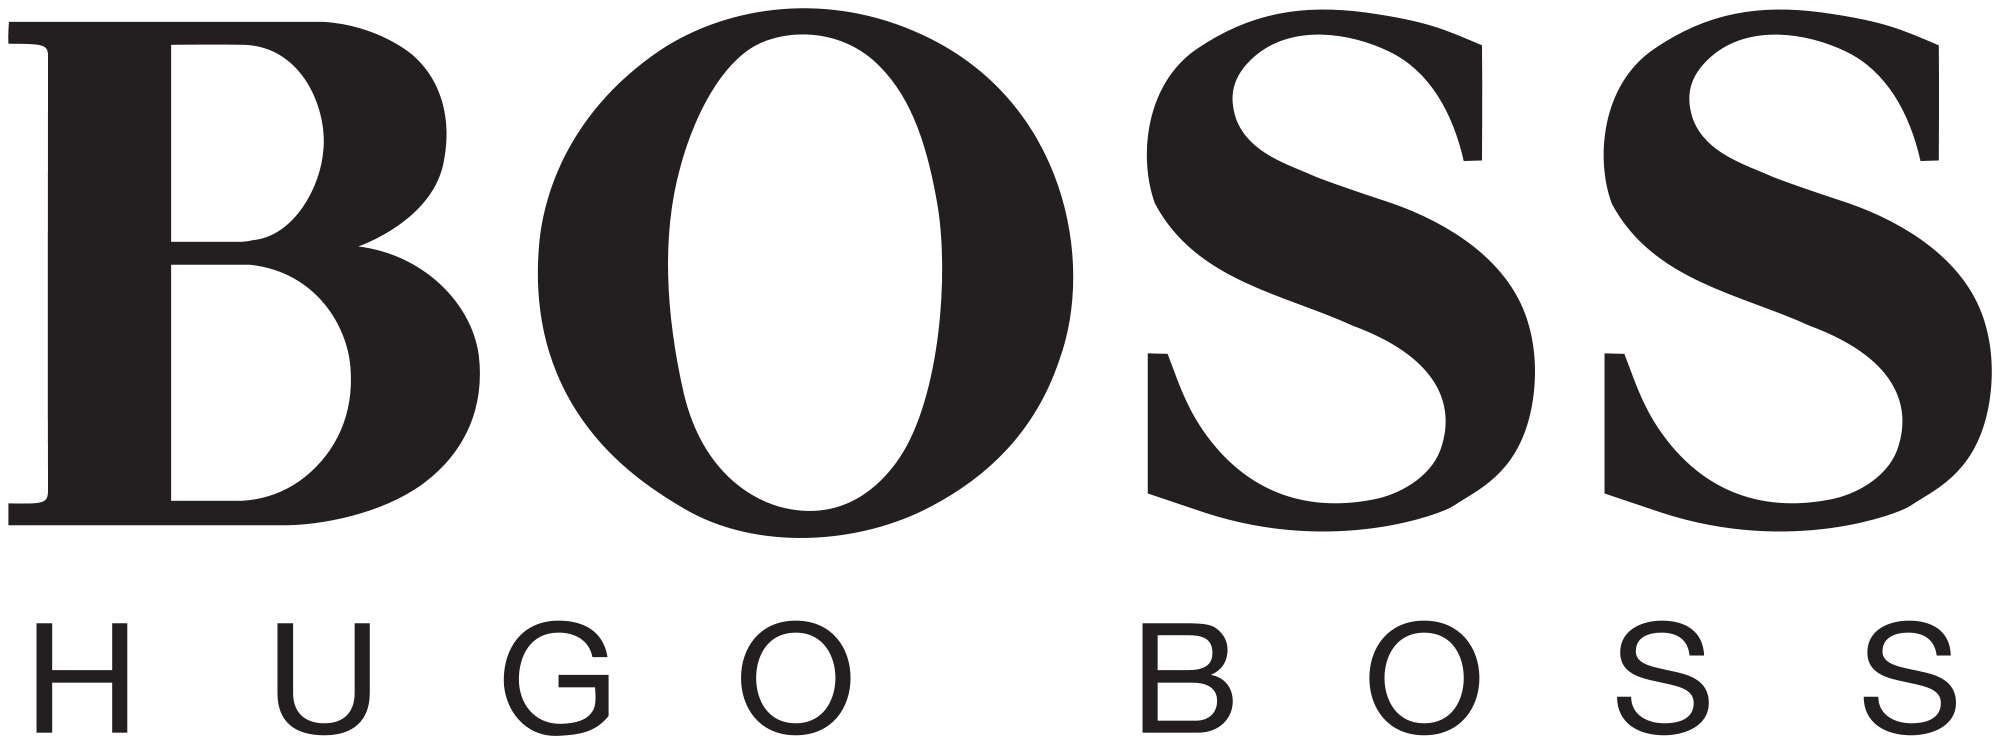 hugo boss shoes philippine airlines logos and names